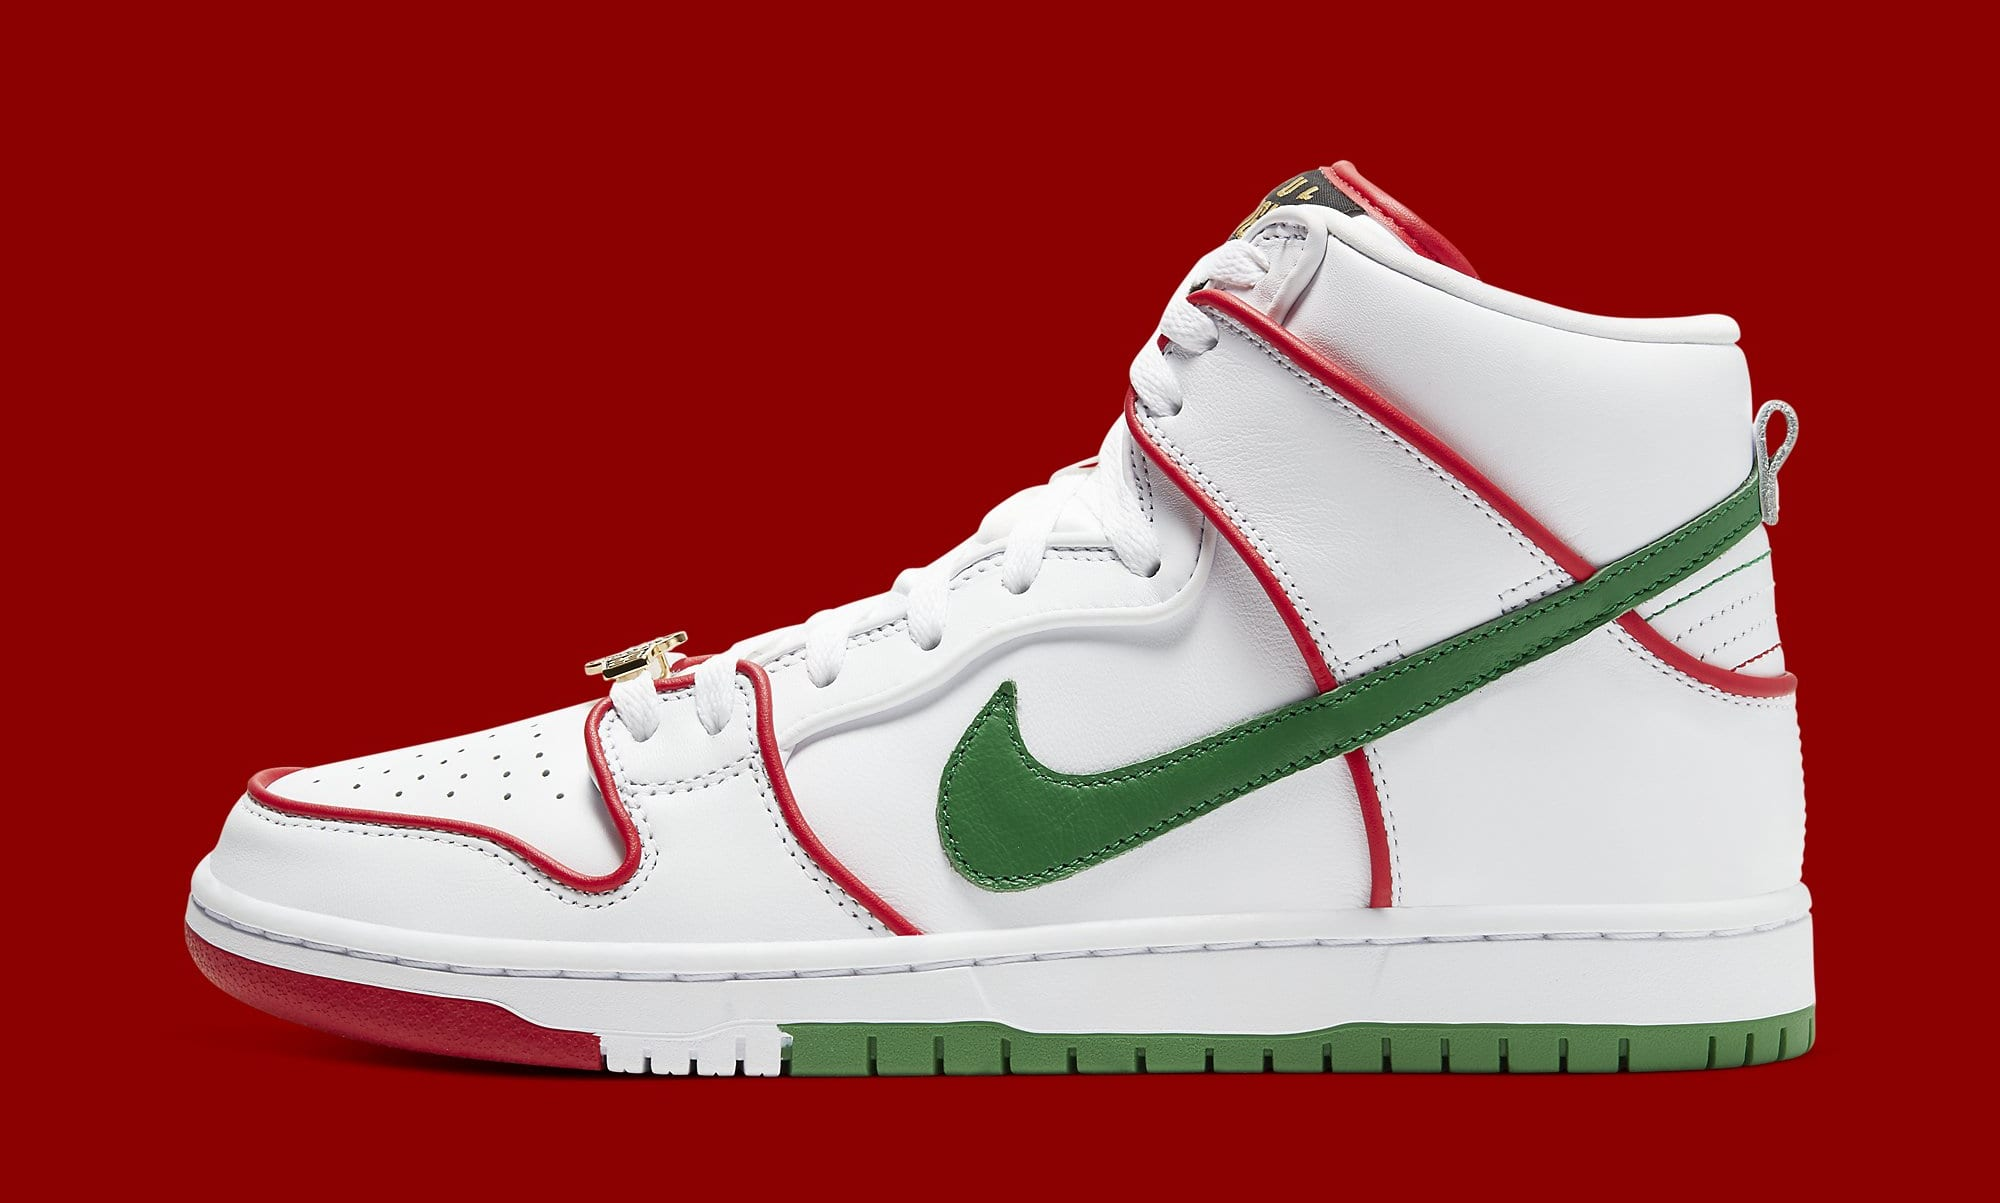 p-rod-nike-sb-dunk-high-boxing-ct6680-100-lateral